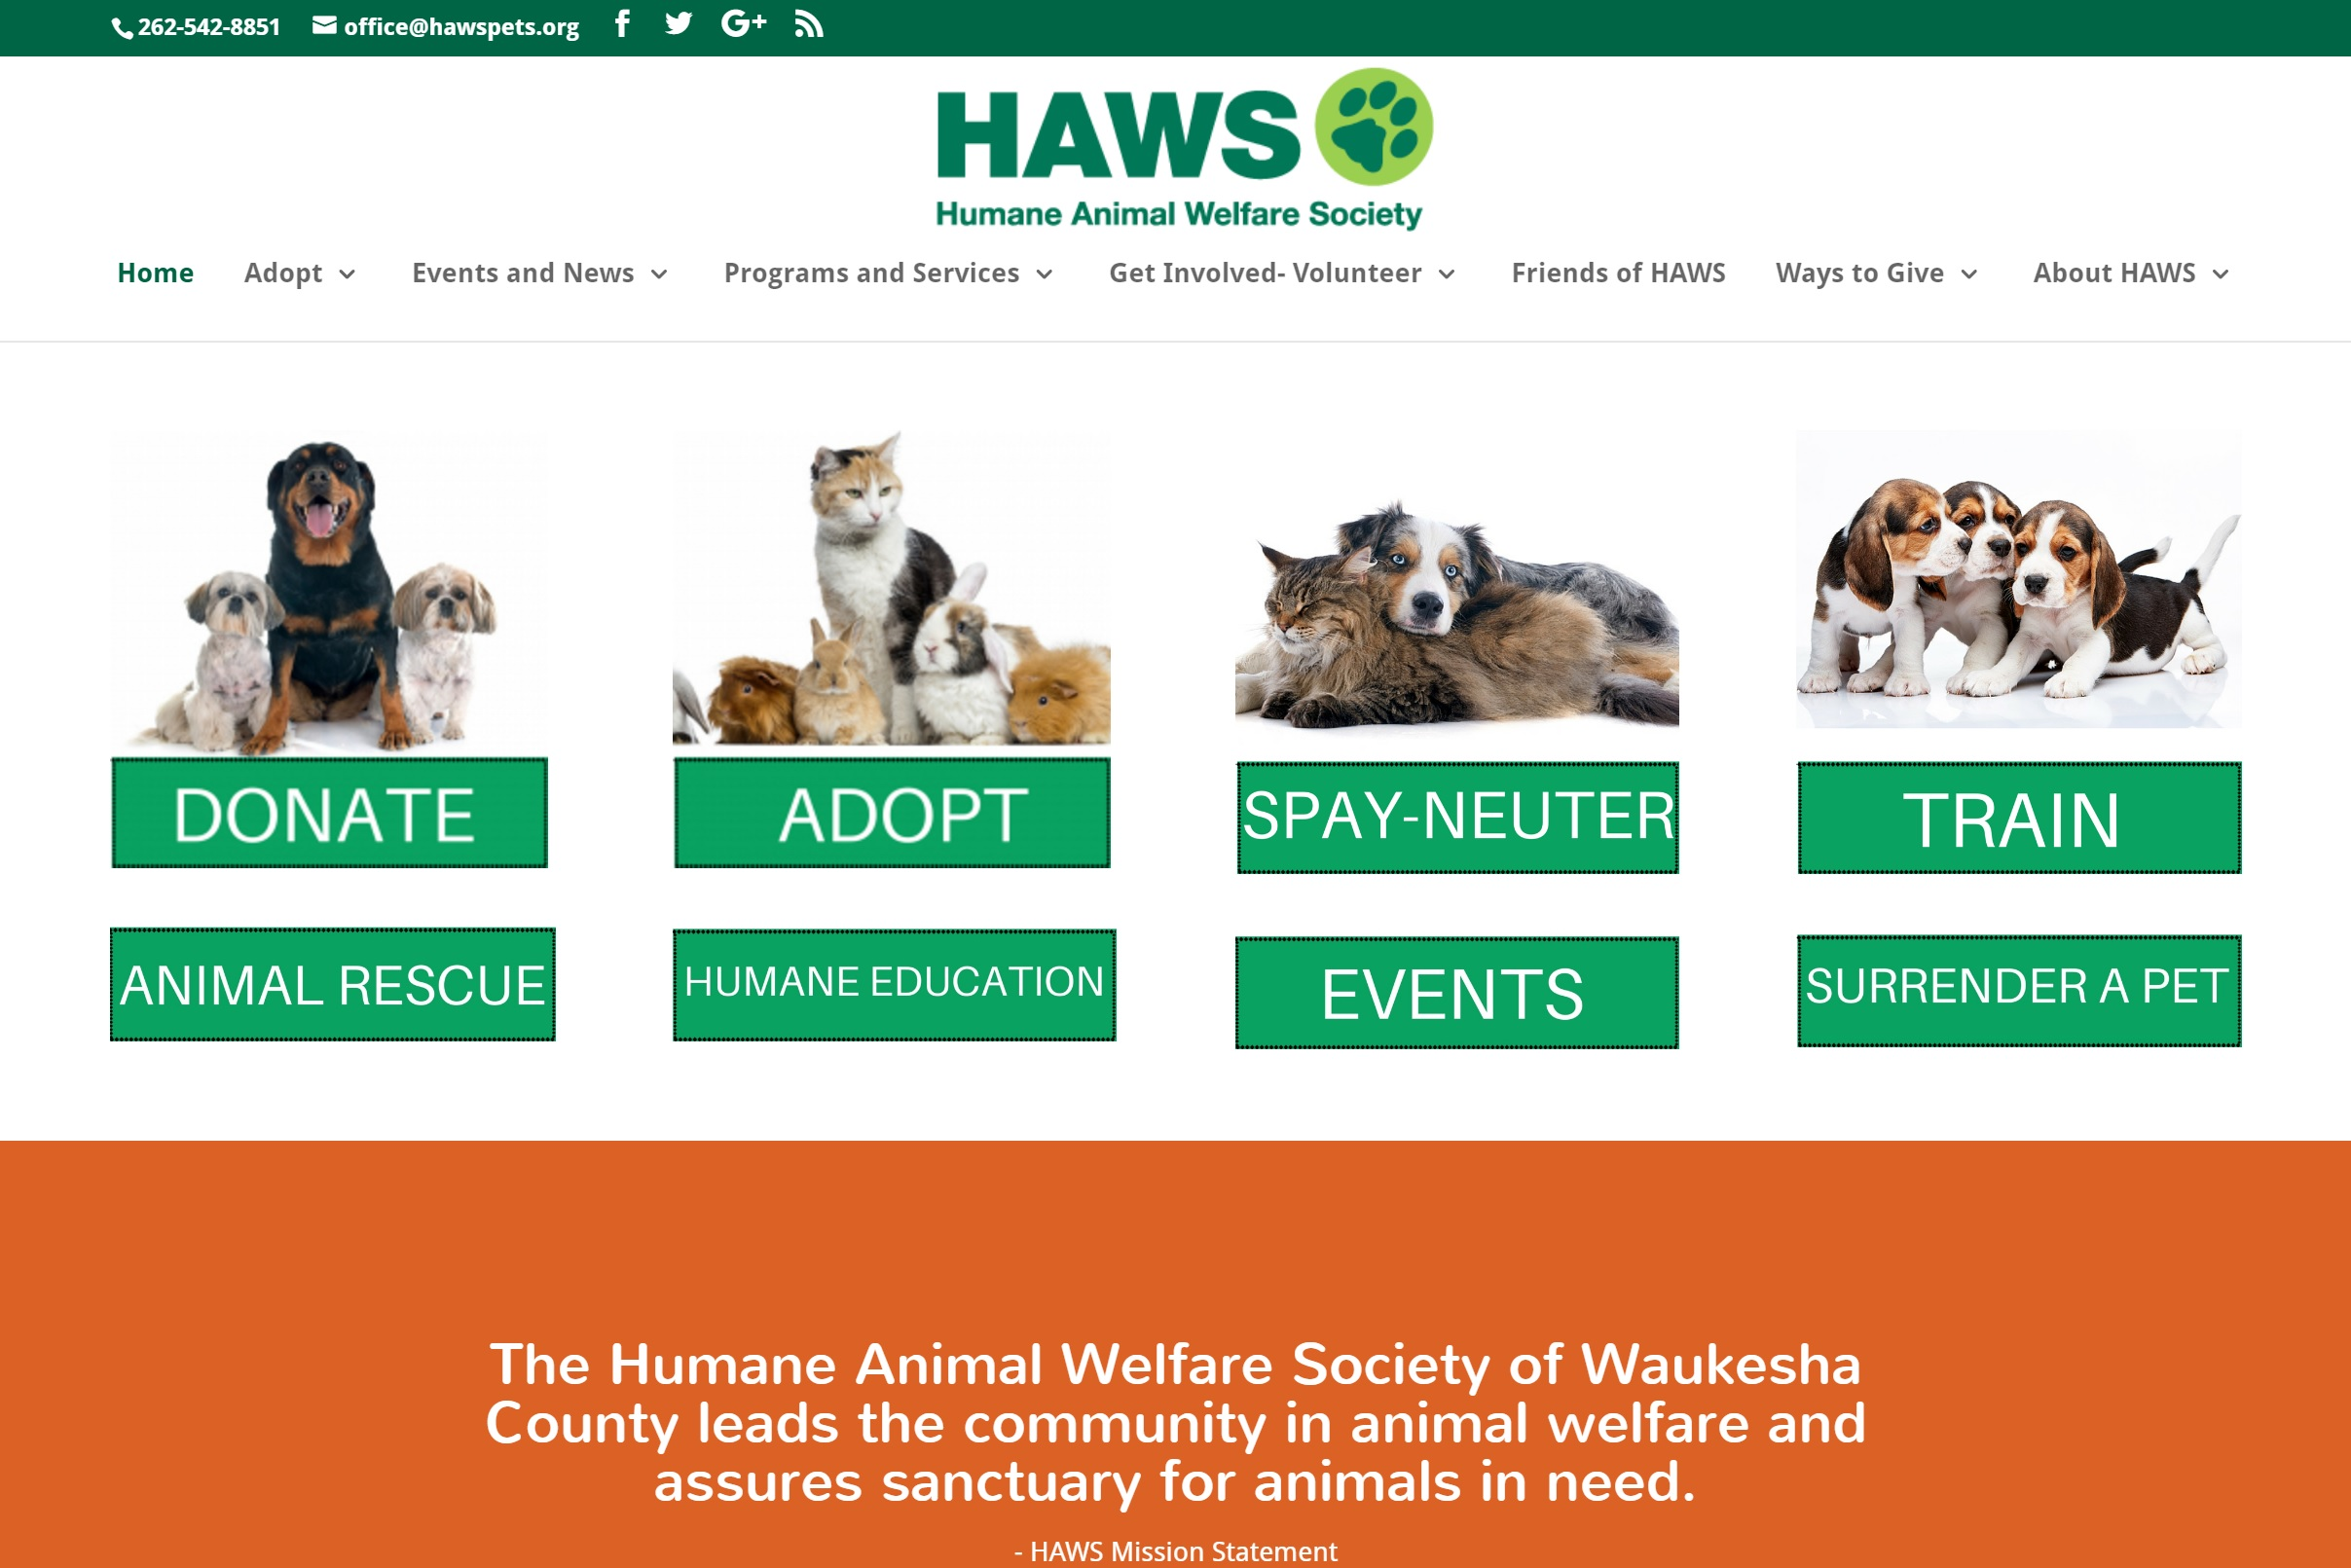 The Humane Animal Welfare Society Website